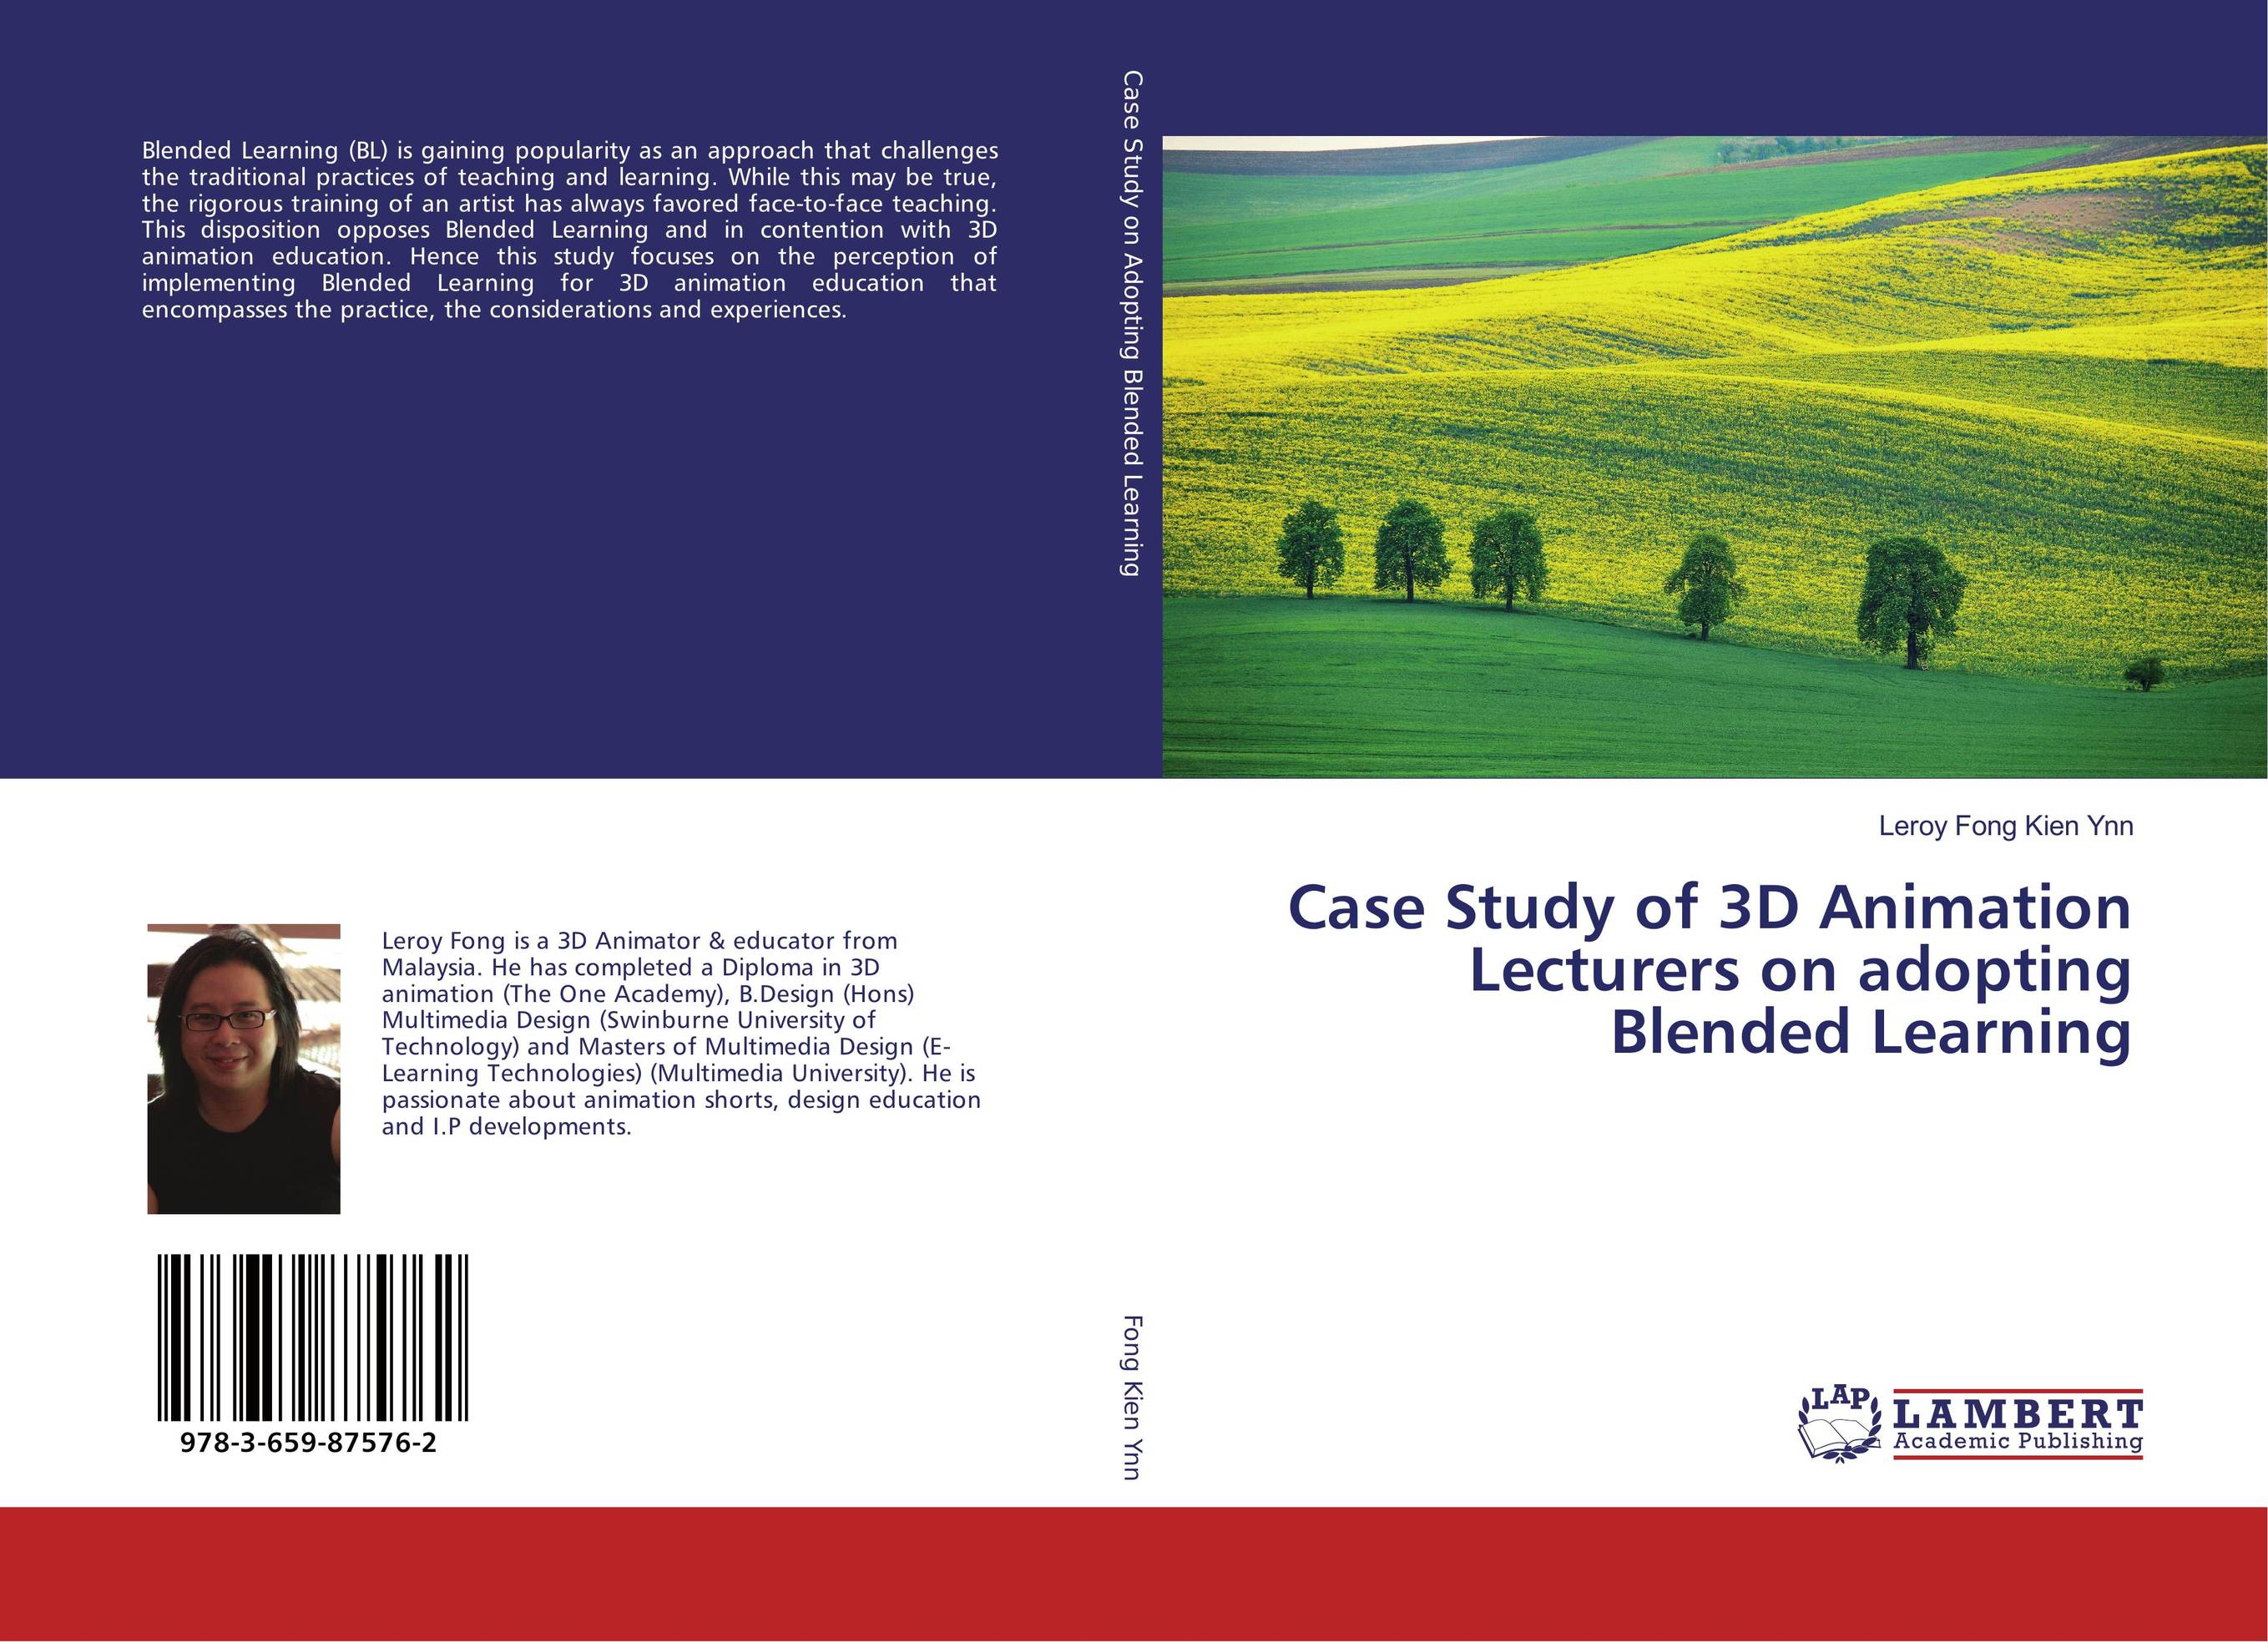 Case Study of 3D Animation Lecturers on adopting Blended Learning купить